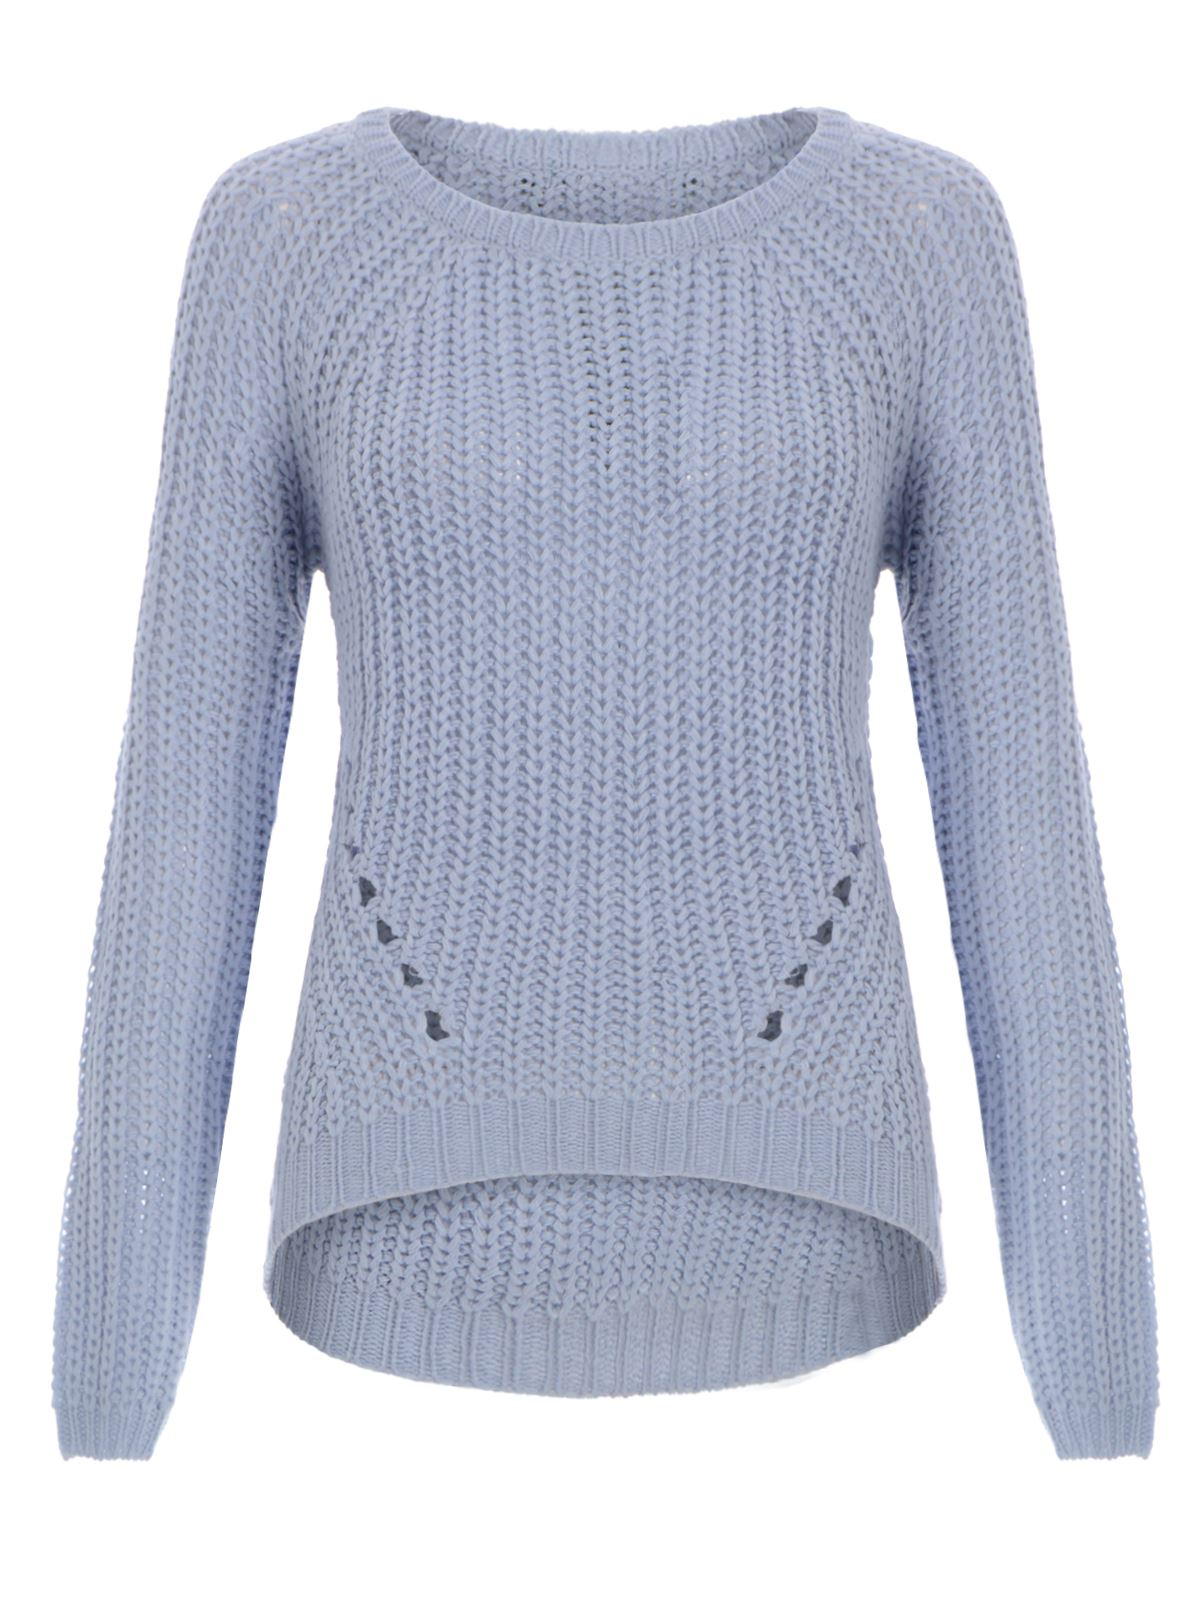 WOMENS LADIES RIBBED KNIT JUMPER RIB HOLE KNITTED CURVED HEM SWEATER PULLOVER...